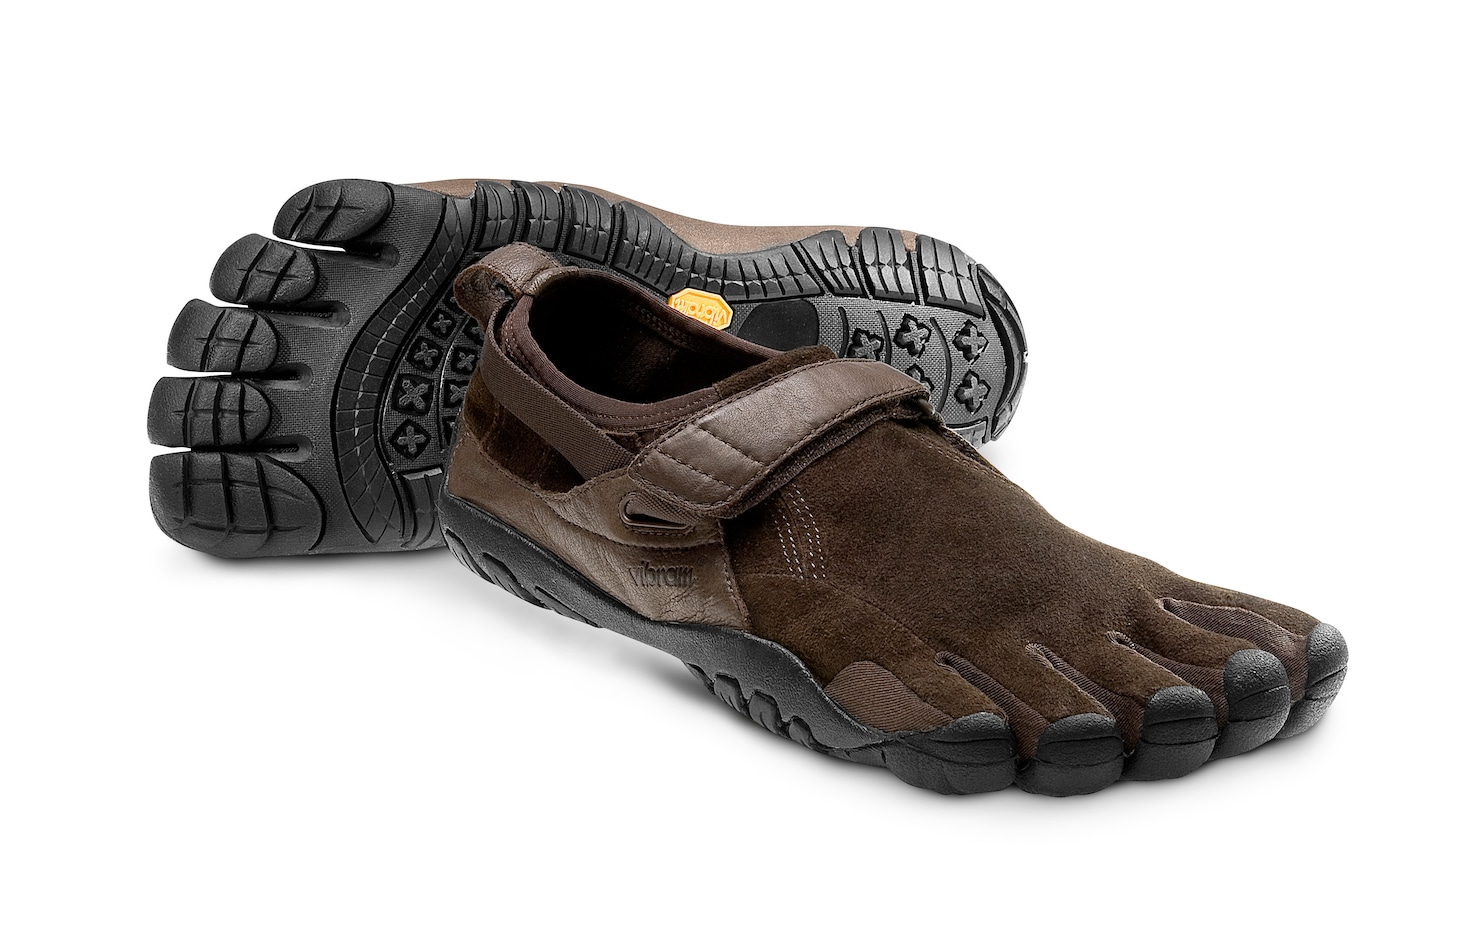 Shoes with Individual Toes